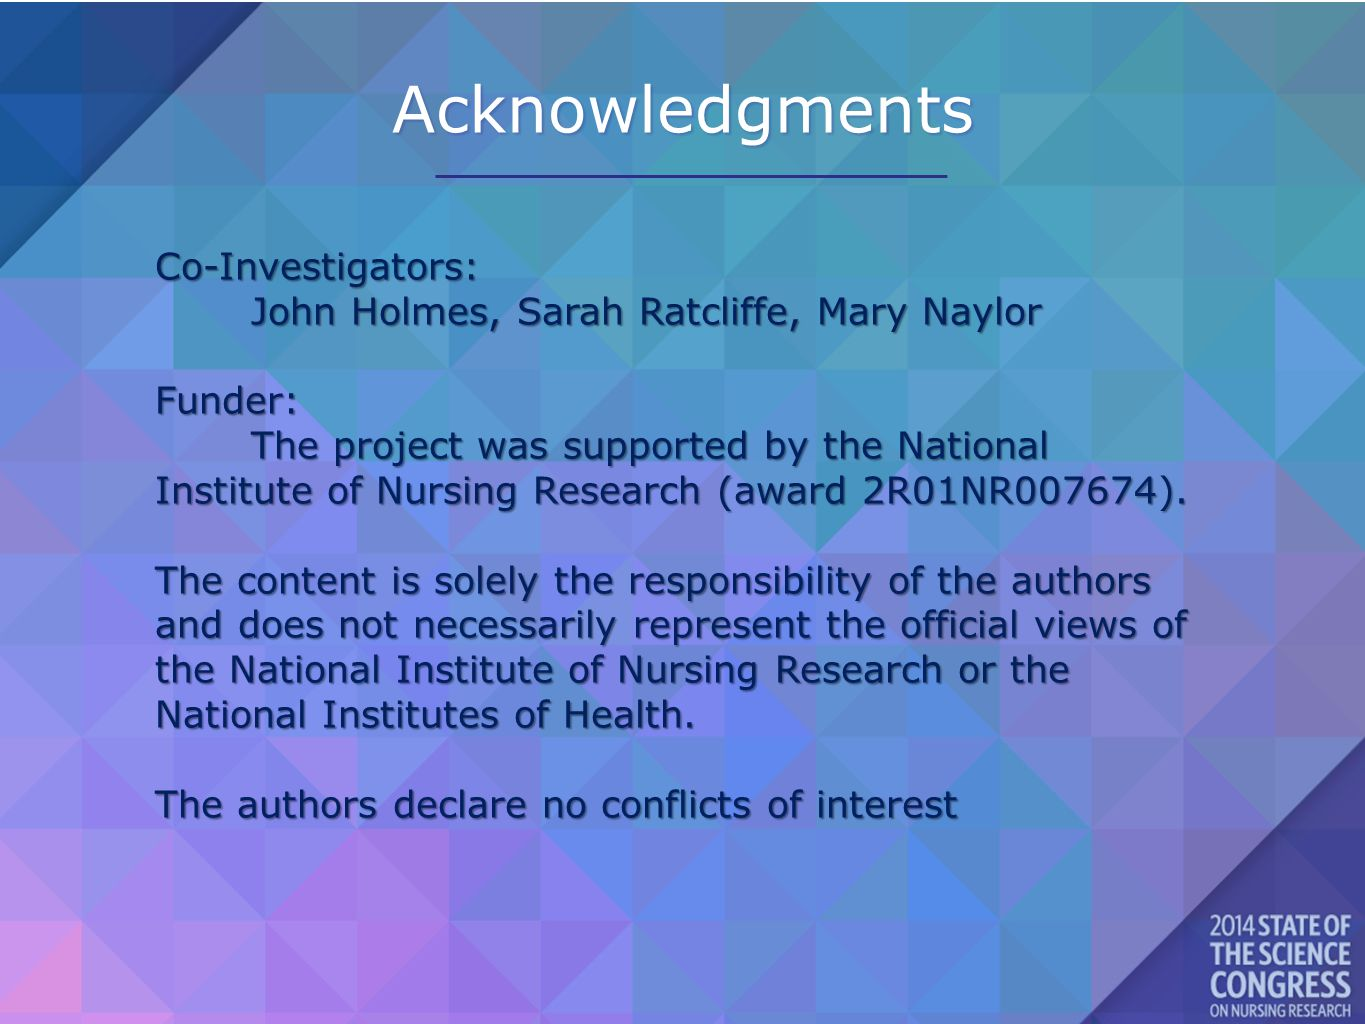 Acknowledgments Co-Investigators: John Holmes, Sarah Ratcliffe, Mary Naylor Funder: The project was supported by the National Institute of Nursing Research (award 2R01NR007674).